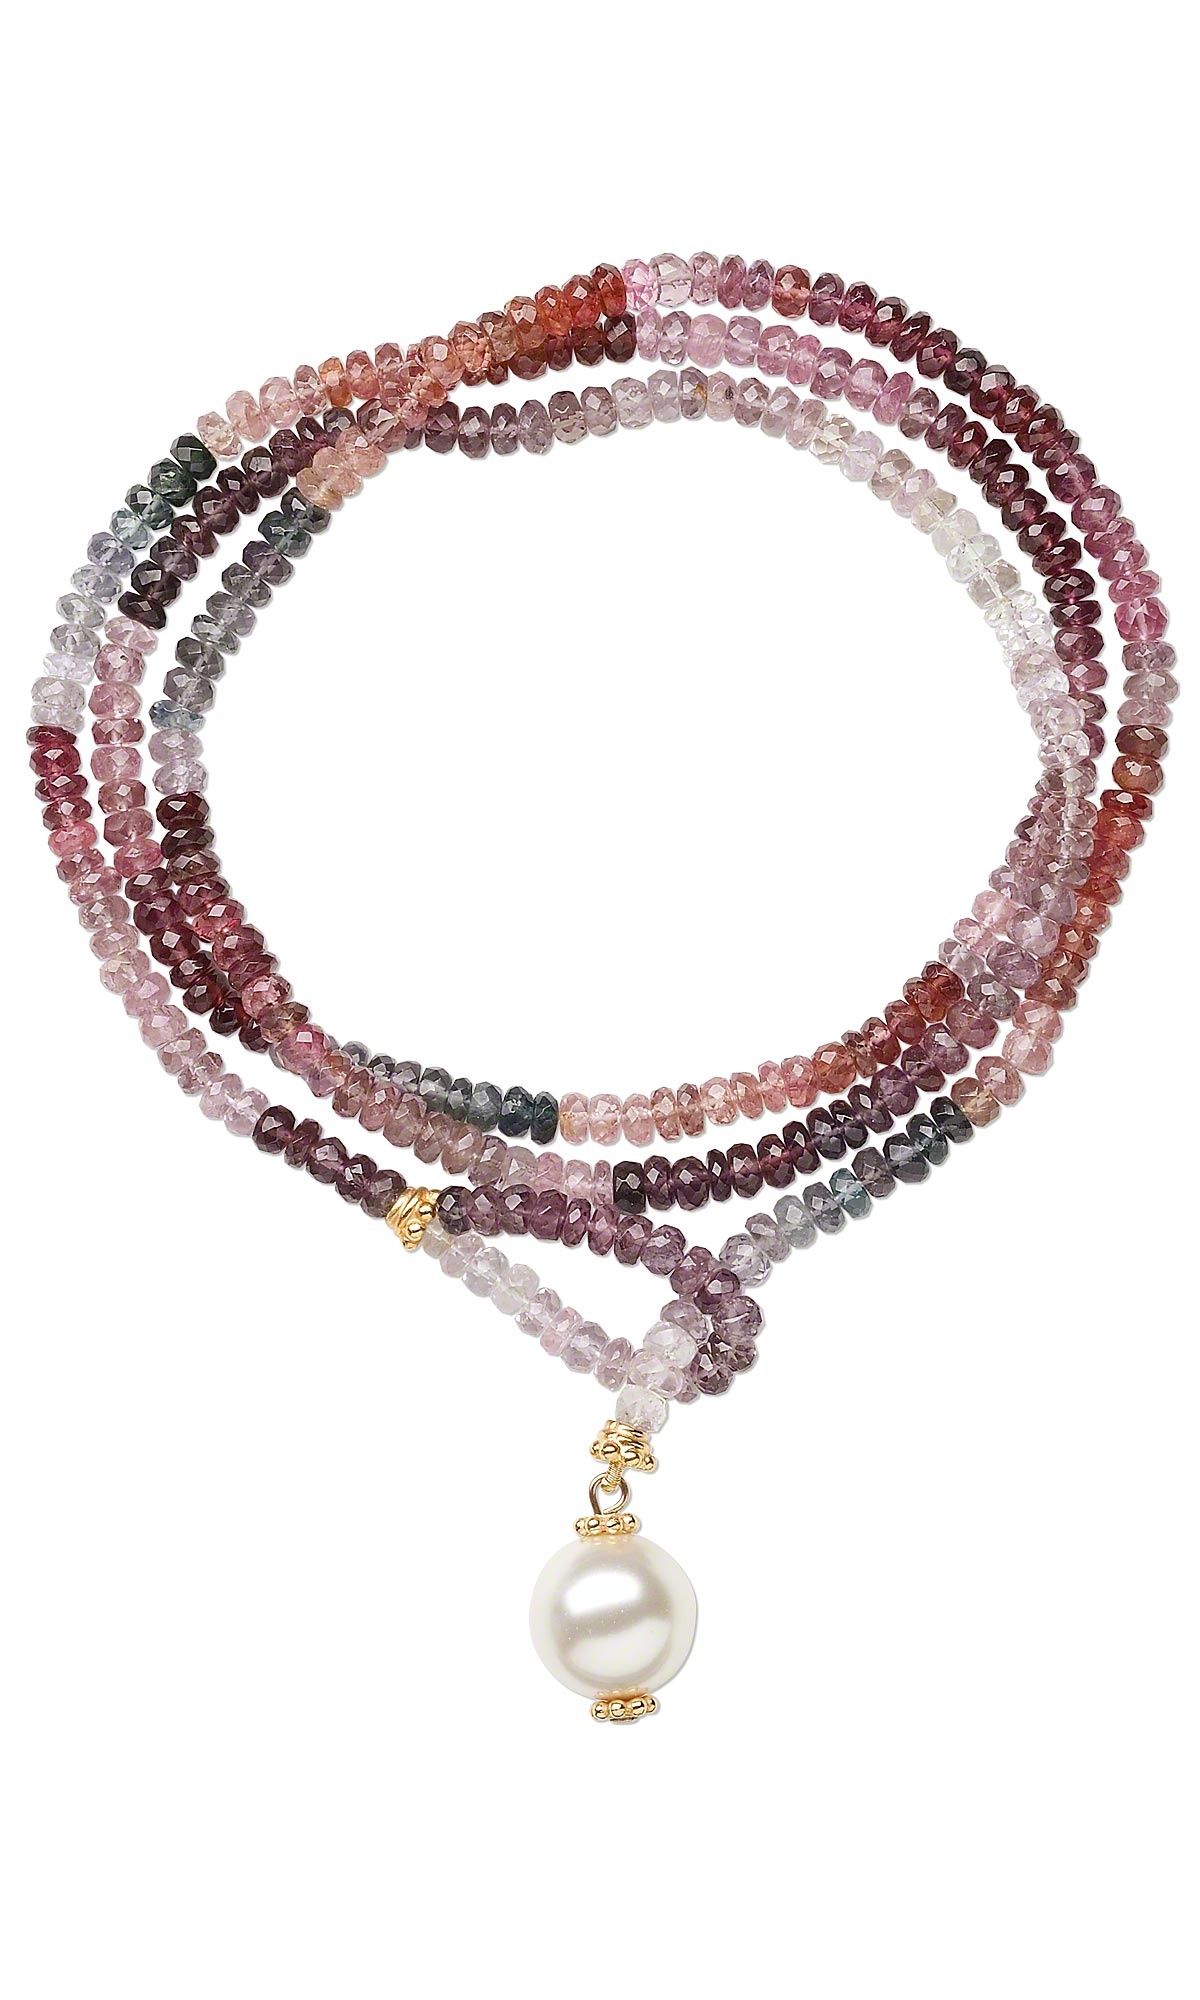 jewelry design lariat style necklace with multi colored